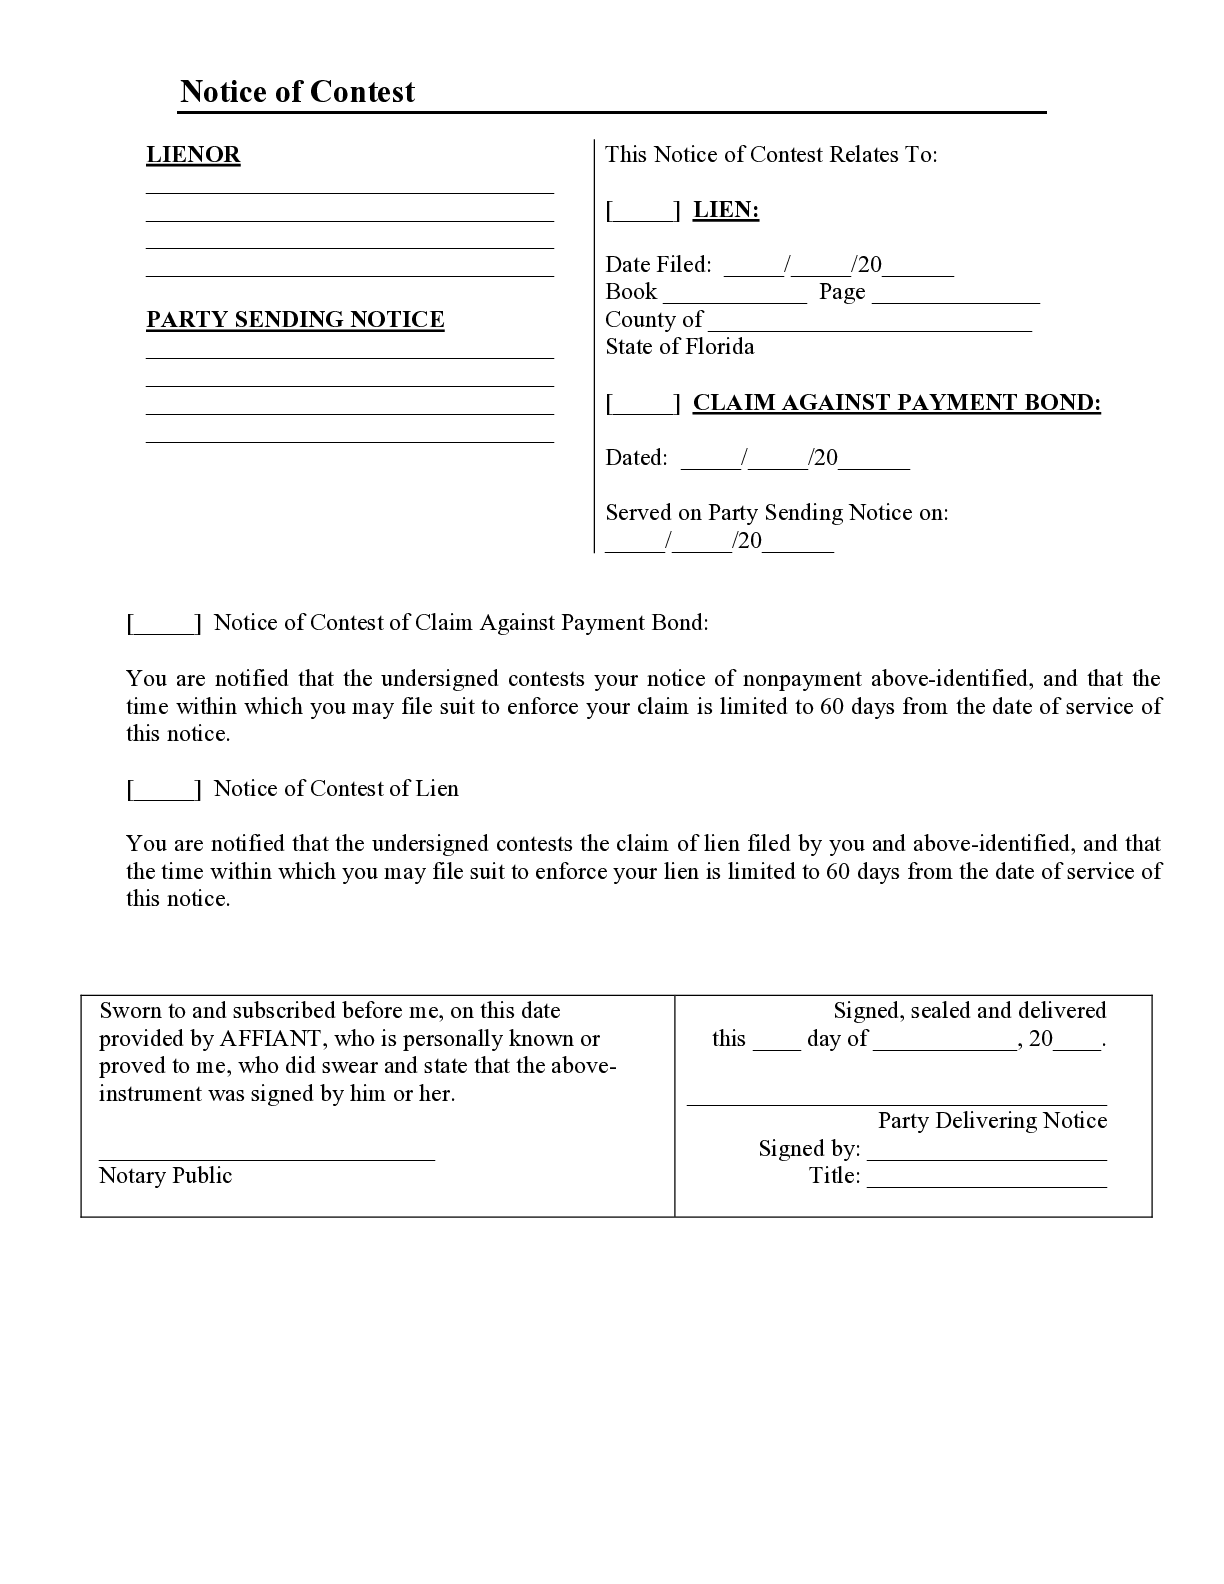 Florida Notice of Contest Form